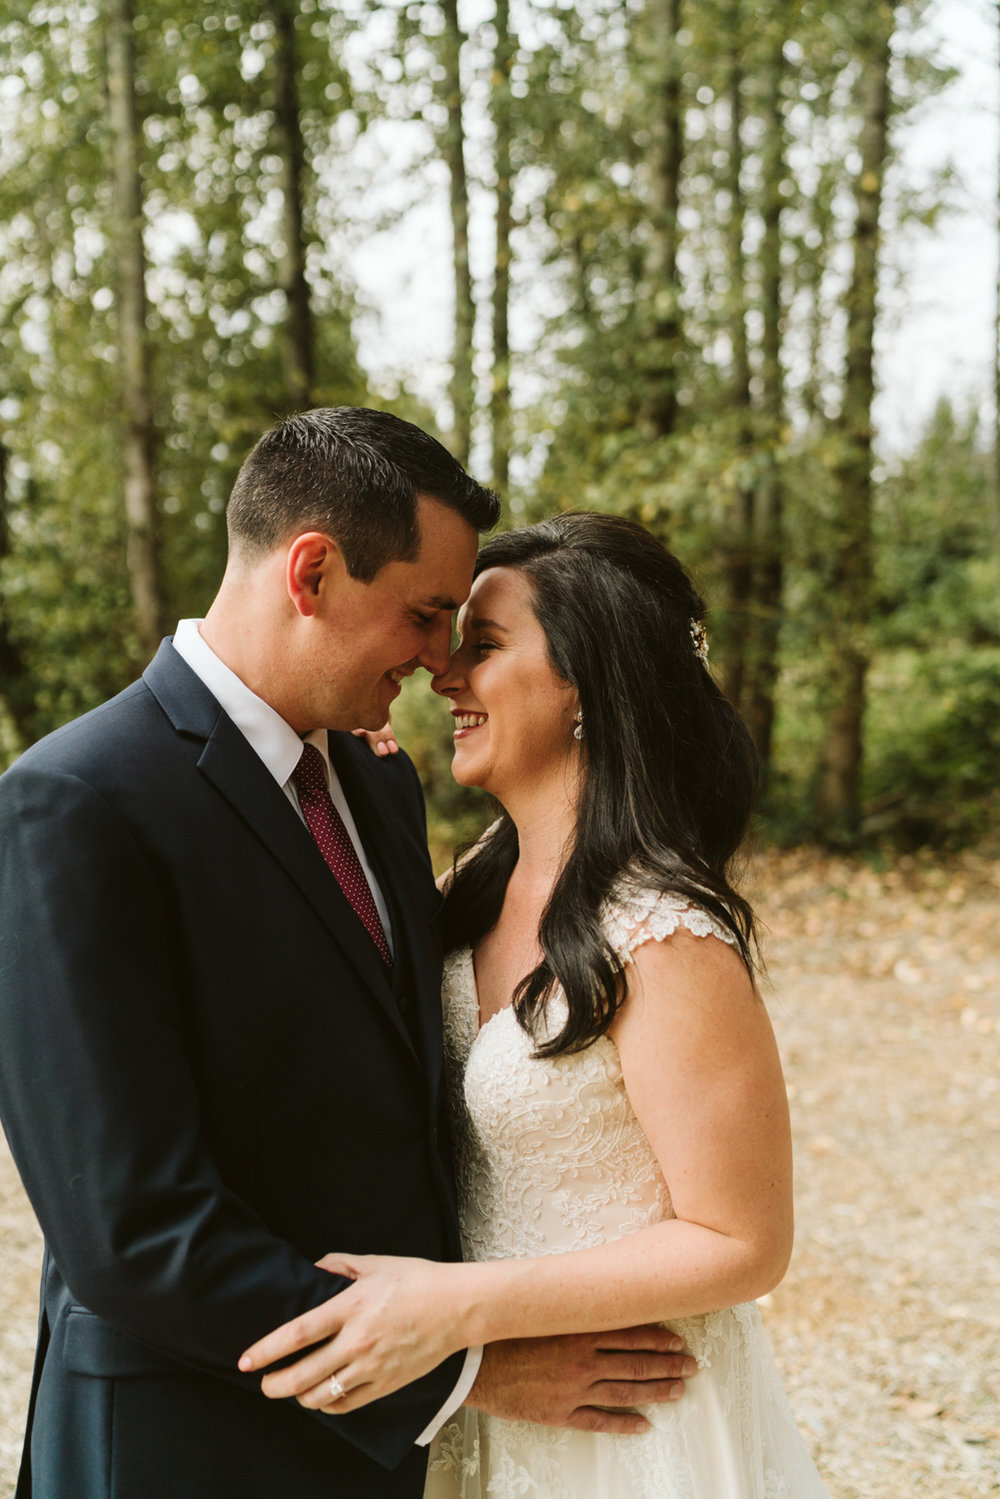 April Yentas Photography - erin & ian slideshow-28.jpg